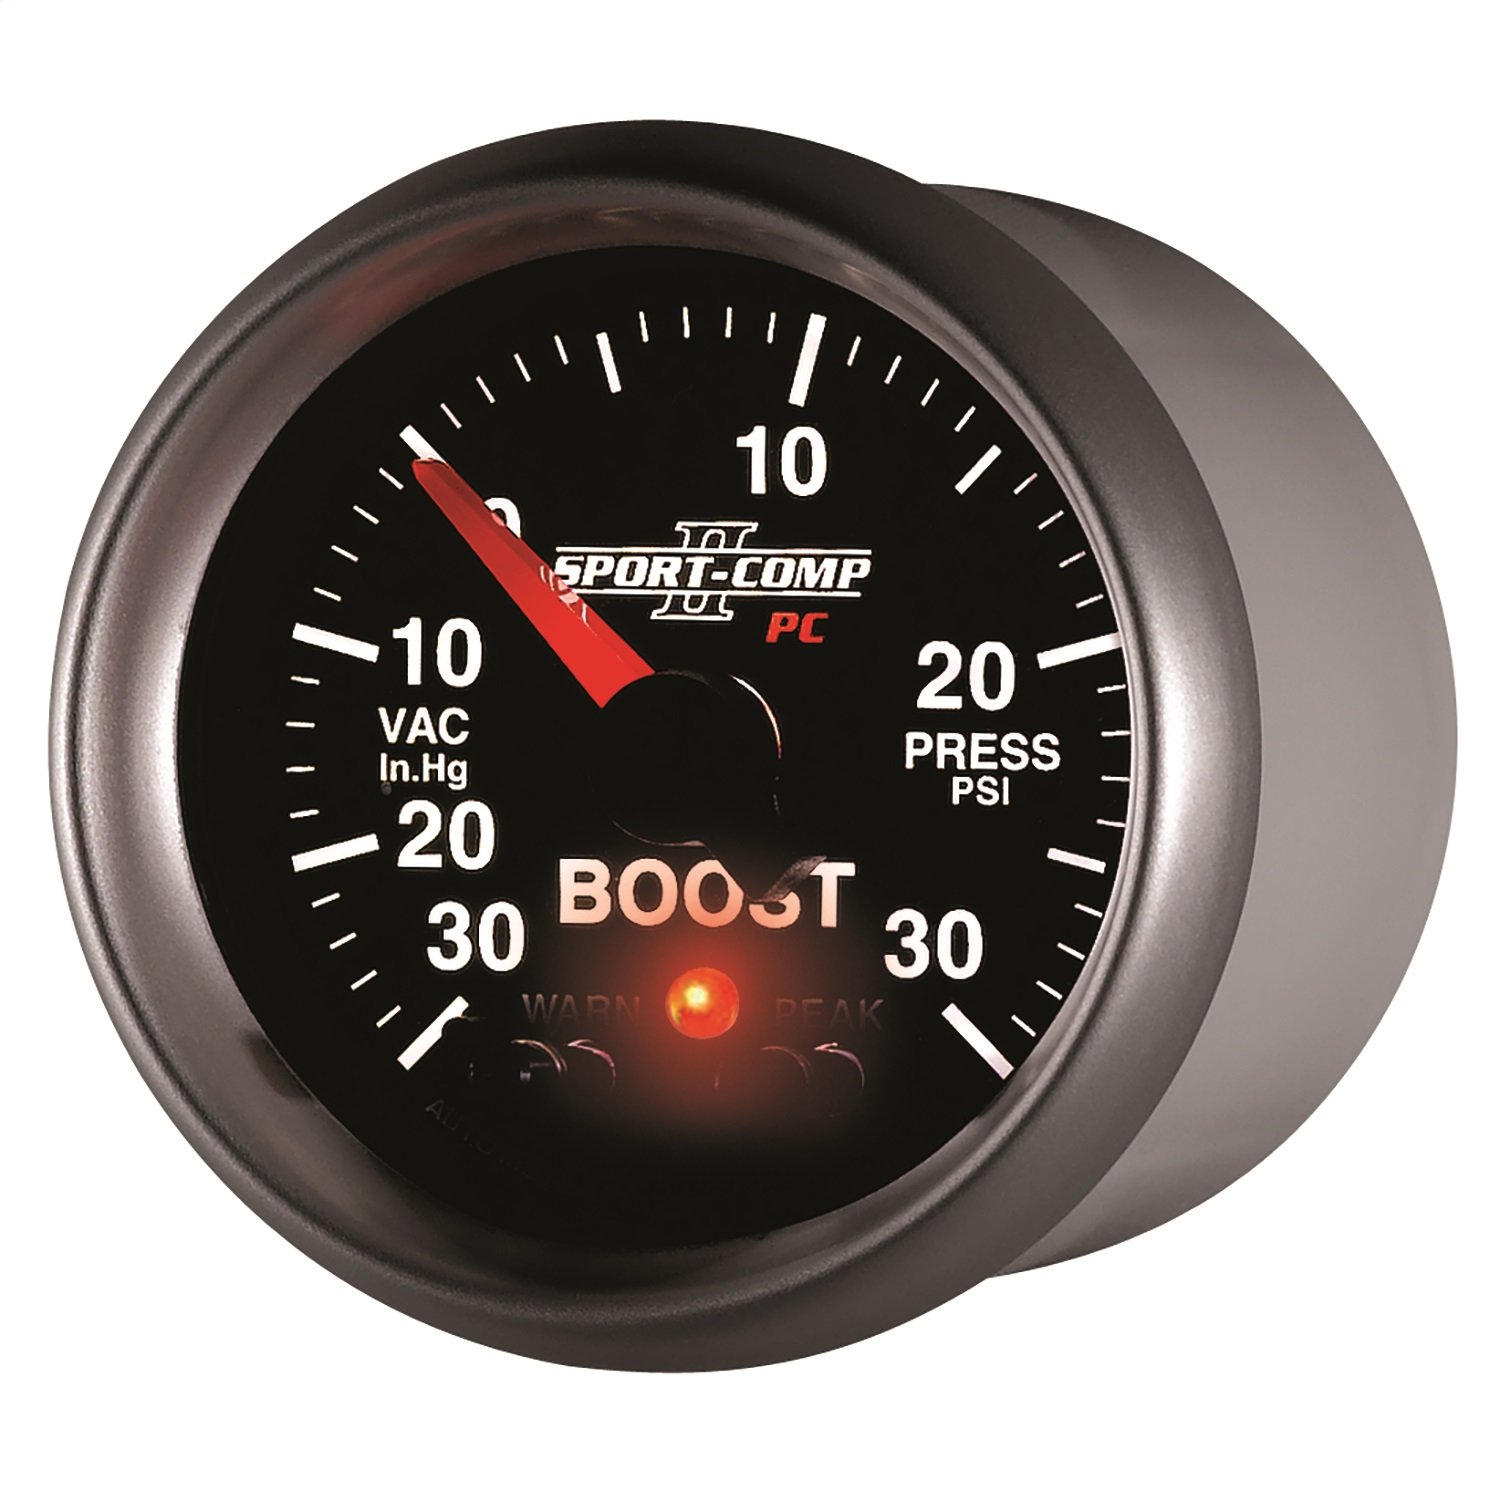 Auto Meter 3677 Sport-Comp II PC 2-1/16'' 30 in. Hg/30 PSI Full Sweep Electric Vacuum/Boost Gauge Peak and Warn with Electronic Control